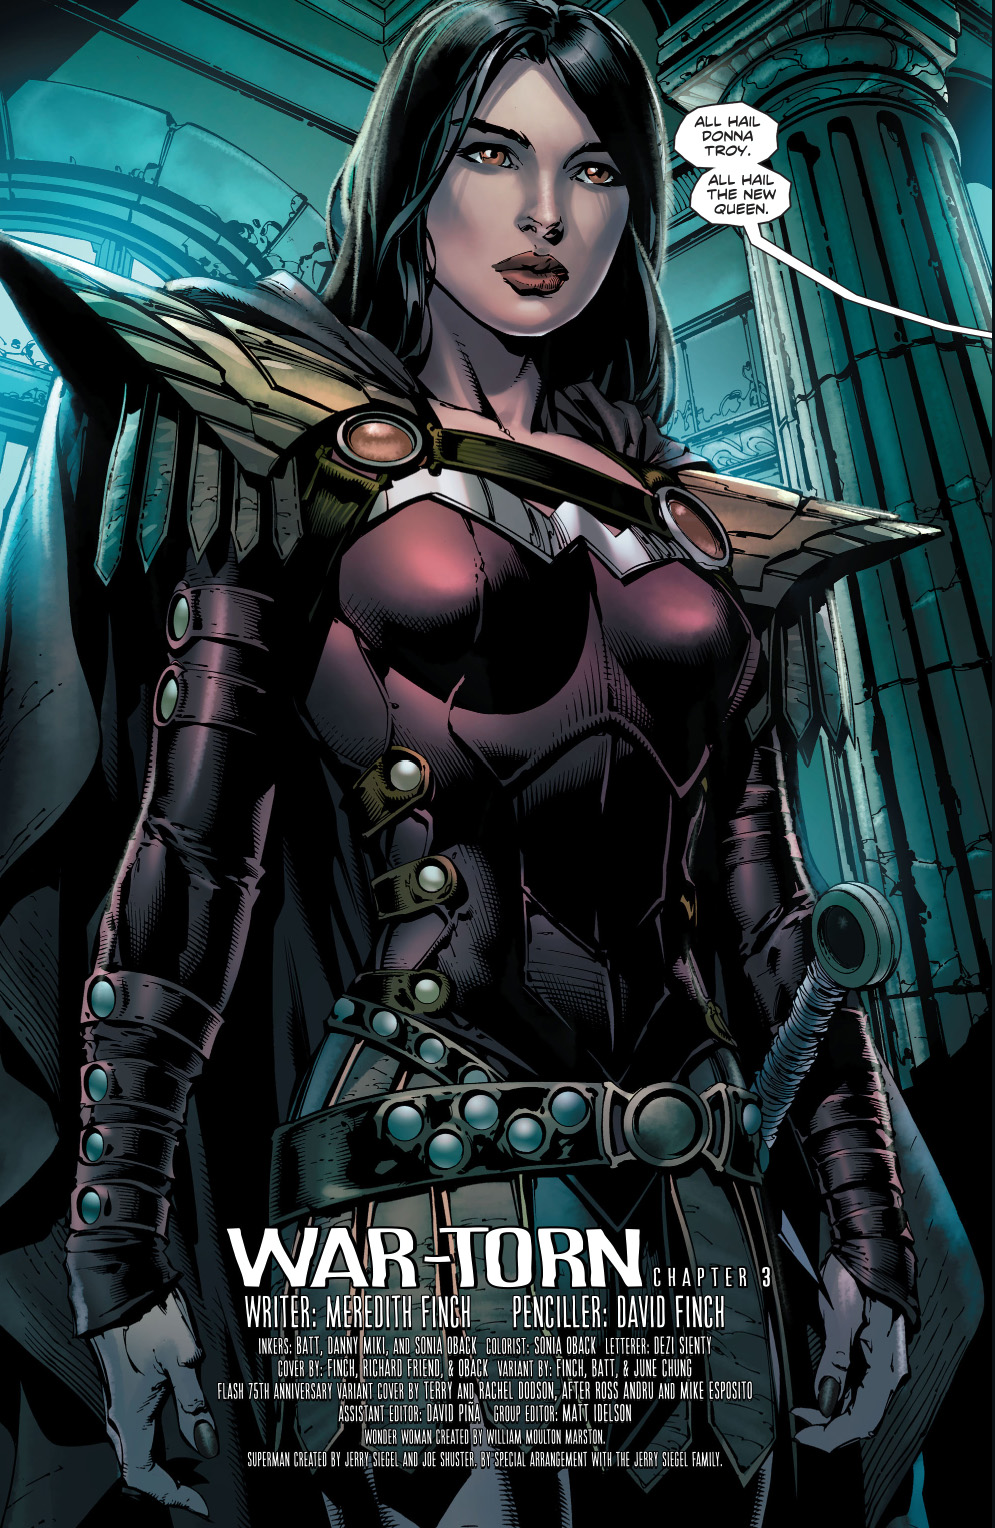 donna troy as queen of the amazons